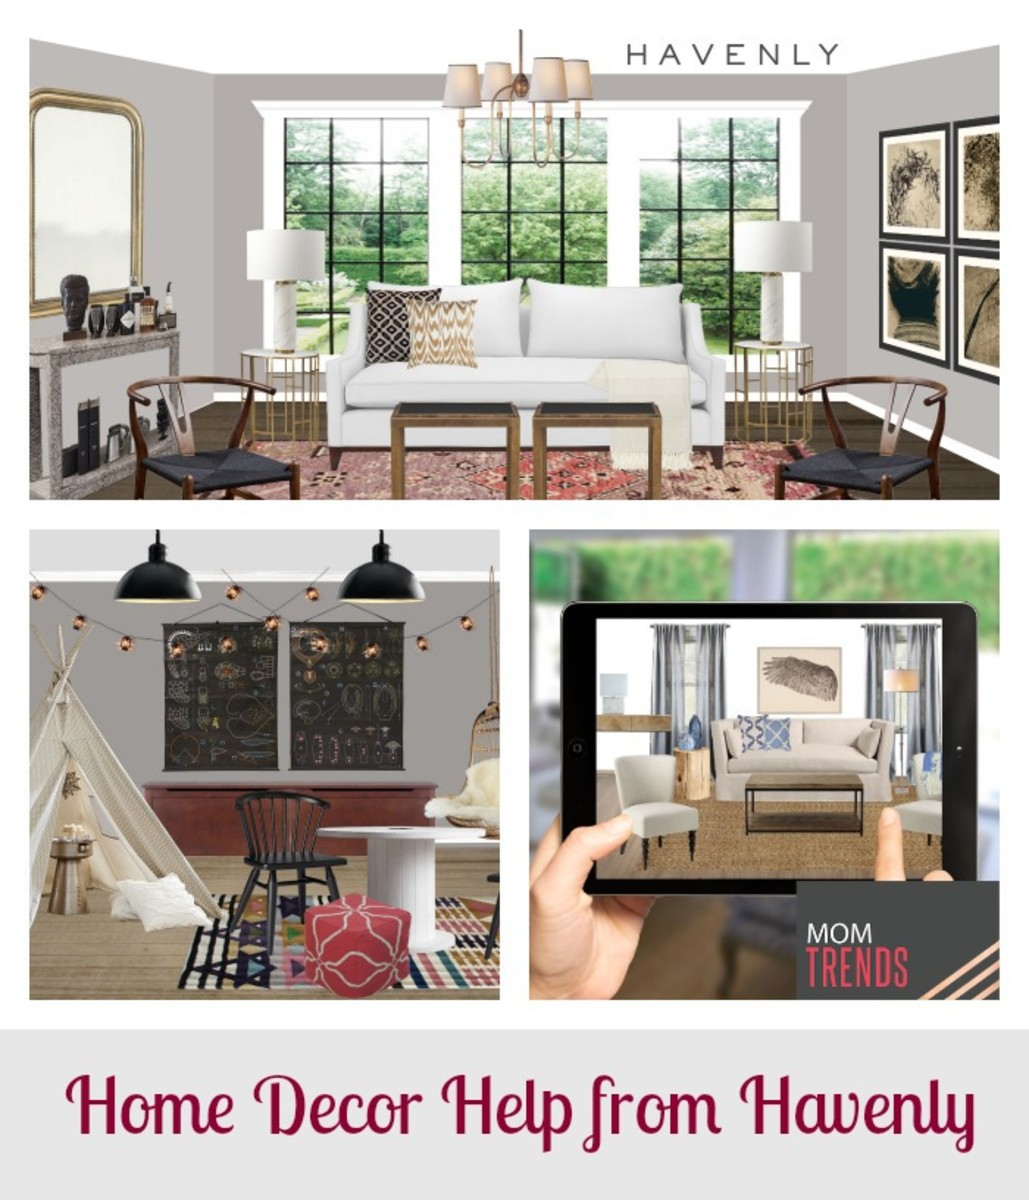 Interior Design Help from Havenly